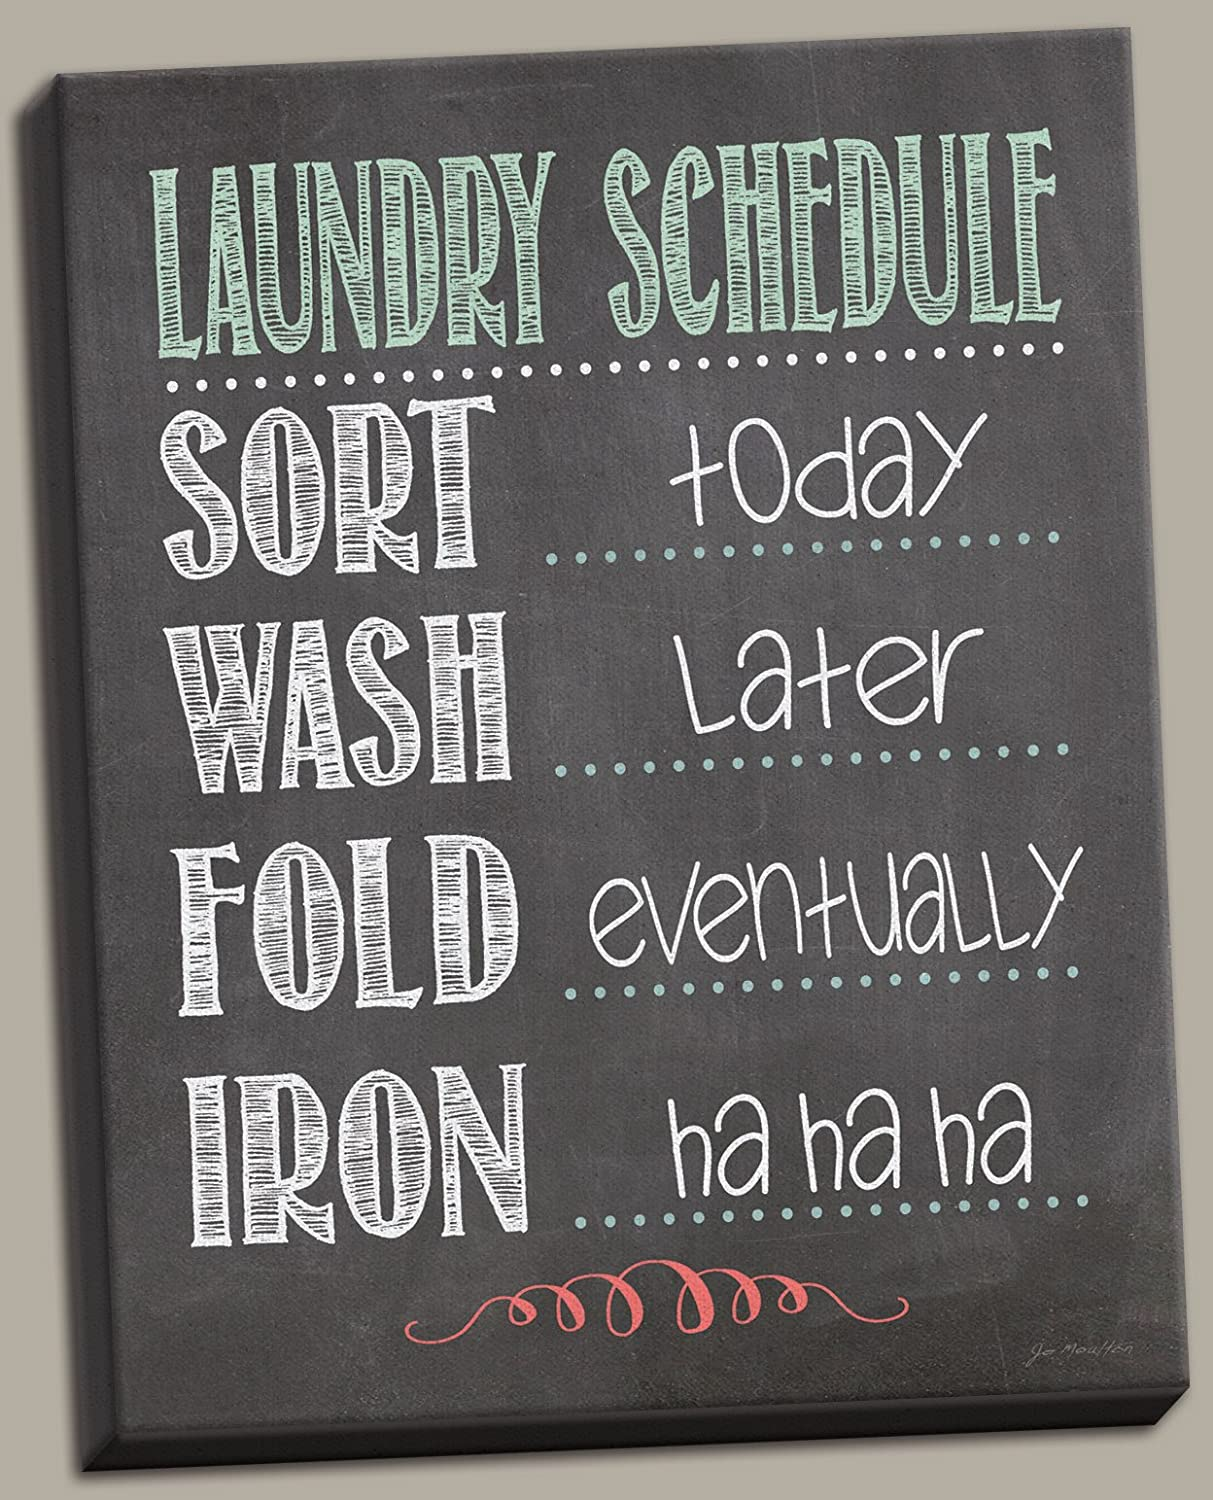 Popular Humorous Laundry Schedule; Sort Wash Fold Iron Laundry Room Décor; One 12X16in Hand-Stretched Canvas